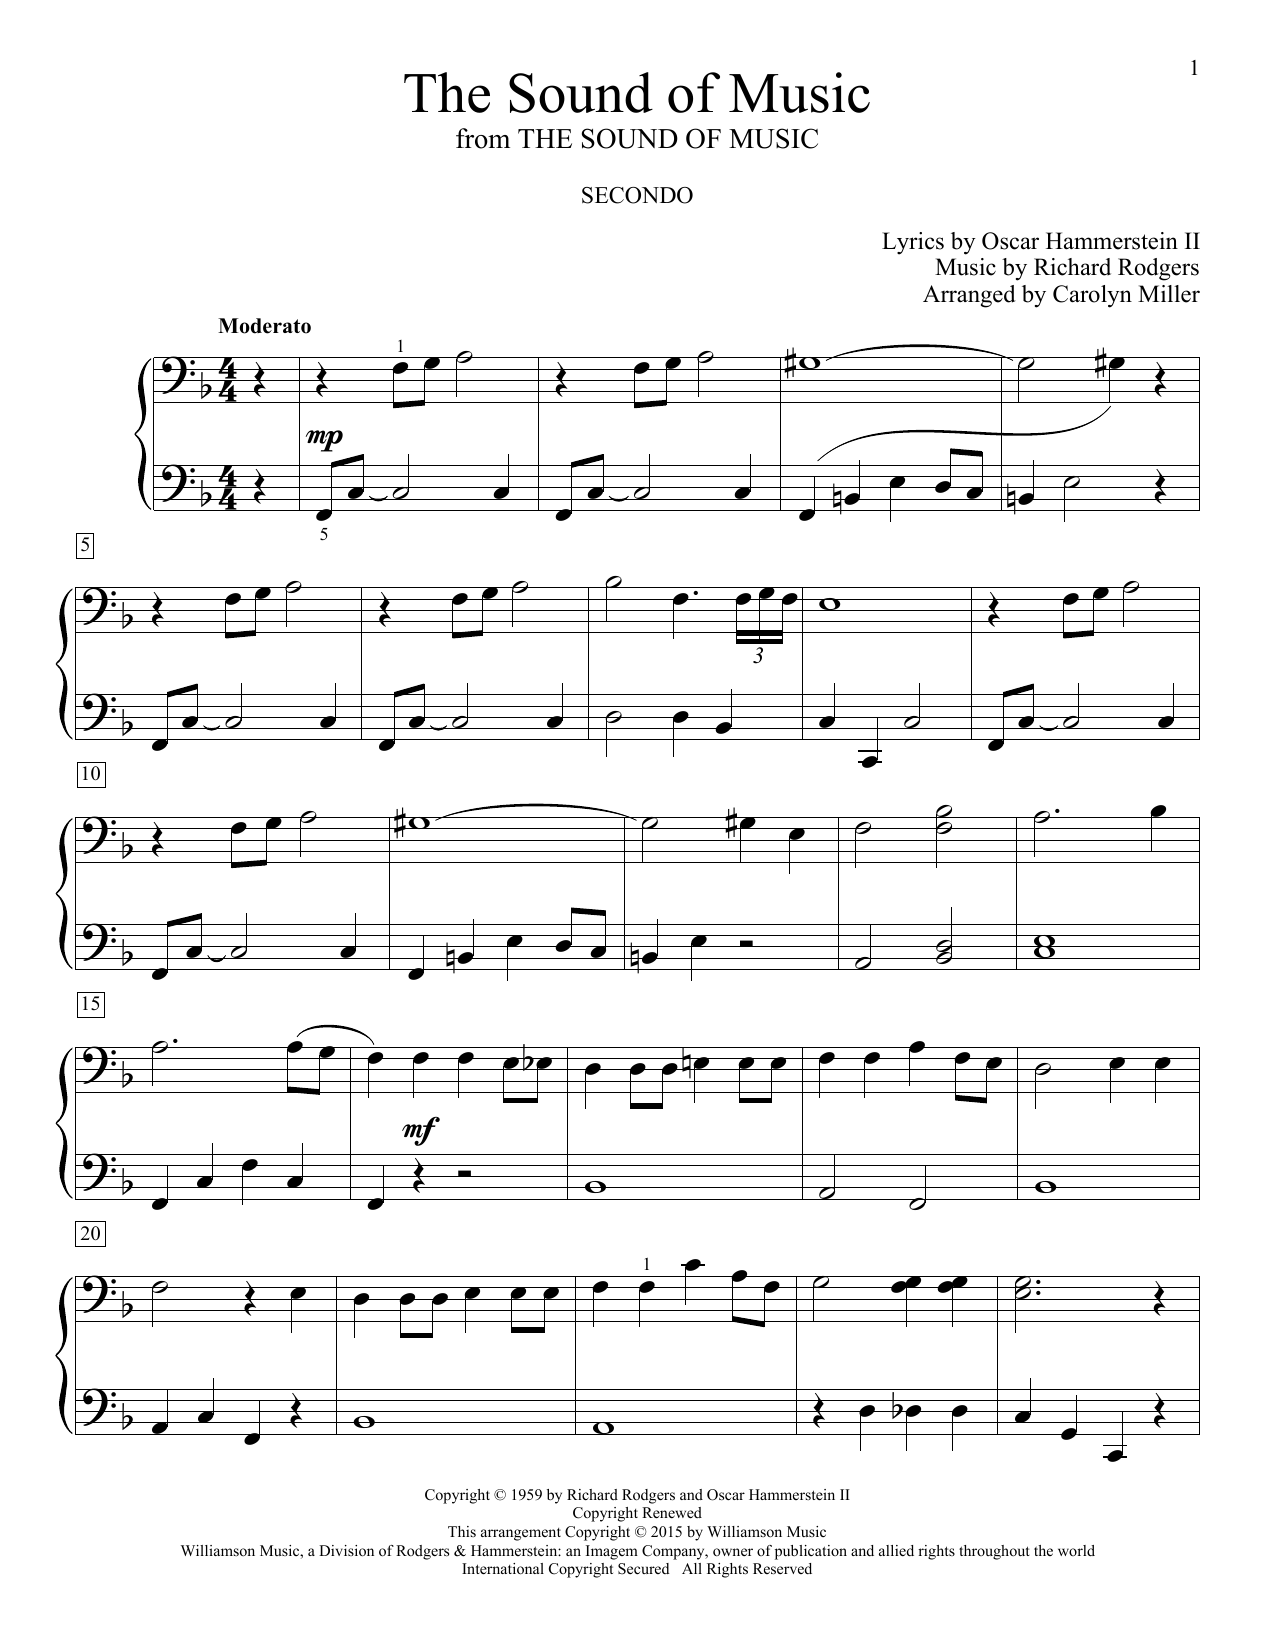 Monster image for free printable sheet music for the sound of music